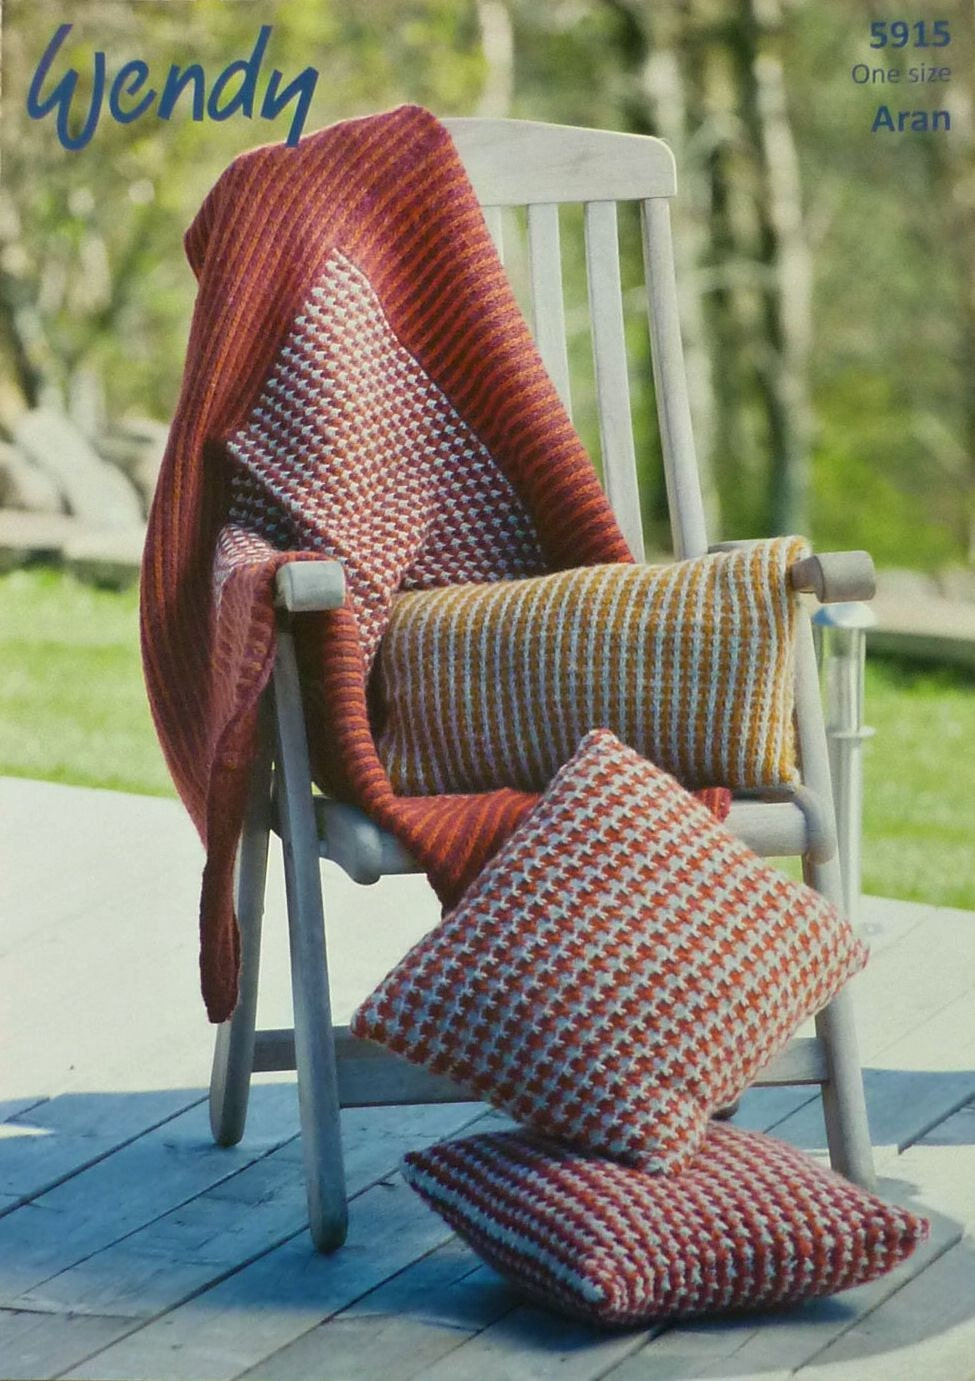 Blanket Knitting Pattern W5915 Two Colour Throw Blanket Square